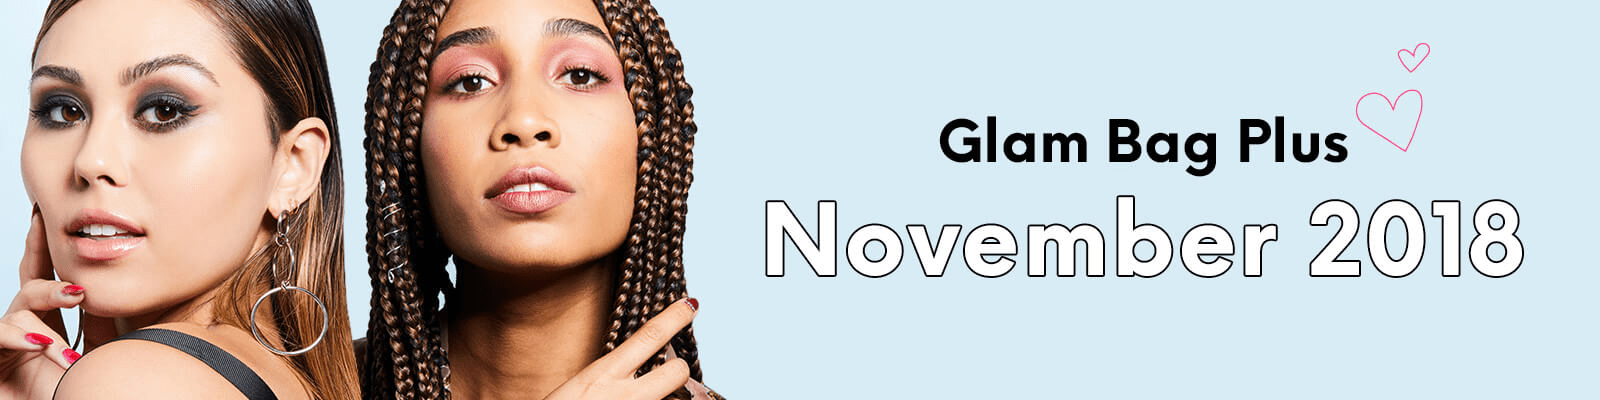 Ipsy November 2018 Glam Bag Plus Reveals Available Now!